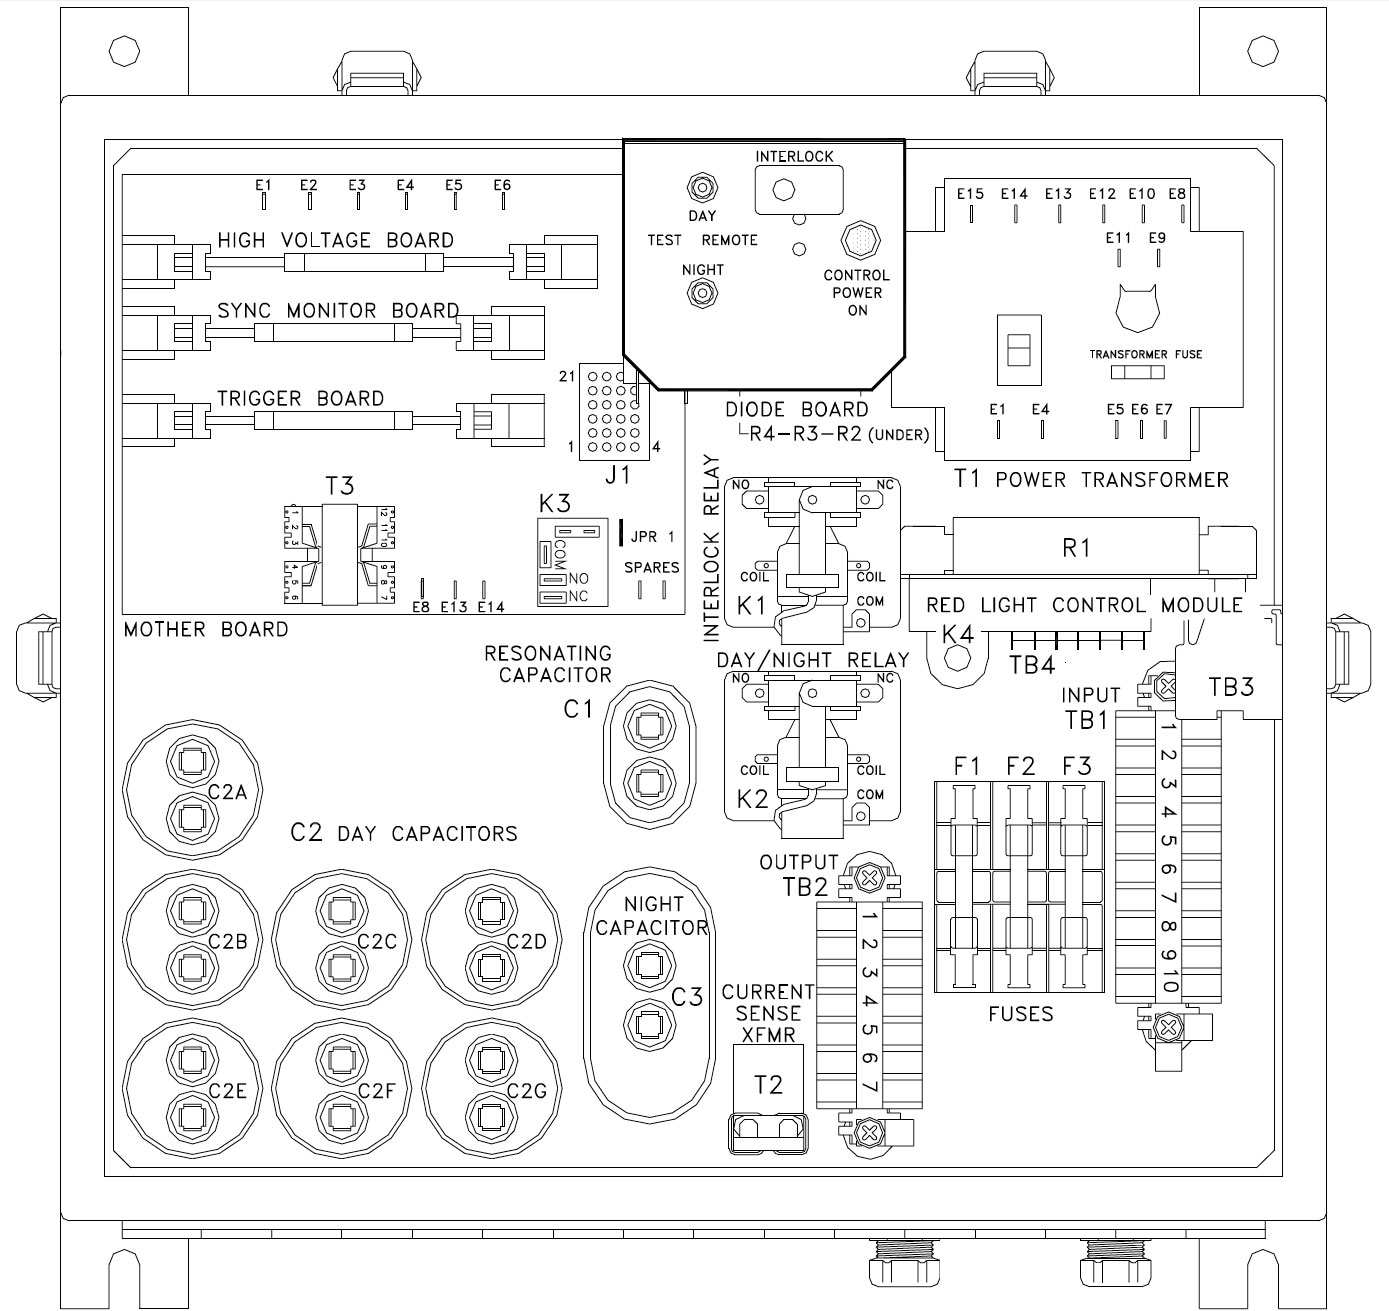 Troubleshooting Guide For Fg3000 Dual Medium Intensity Lighting Daisy Chain Light Fixture Wiring Diagram Figure 1 Power Supply Component Locations